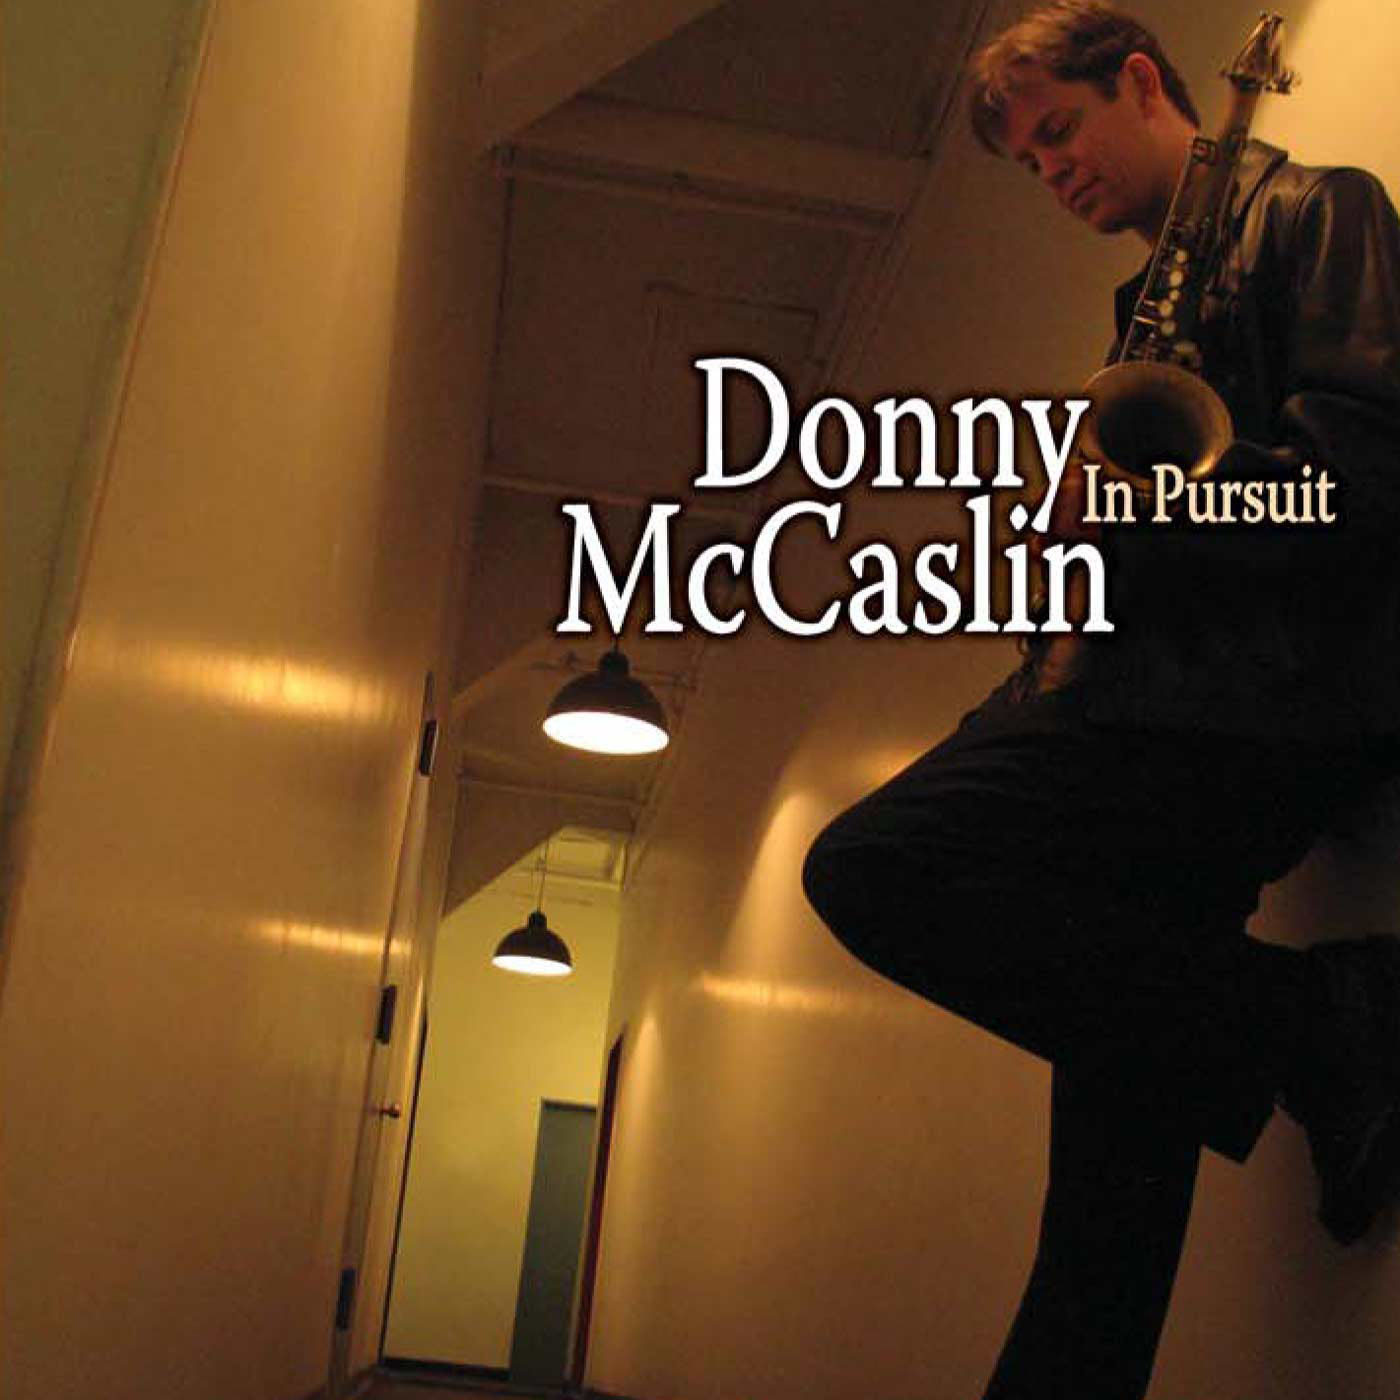 In Pursuit by Donny McCaslin cover